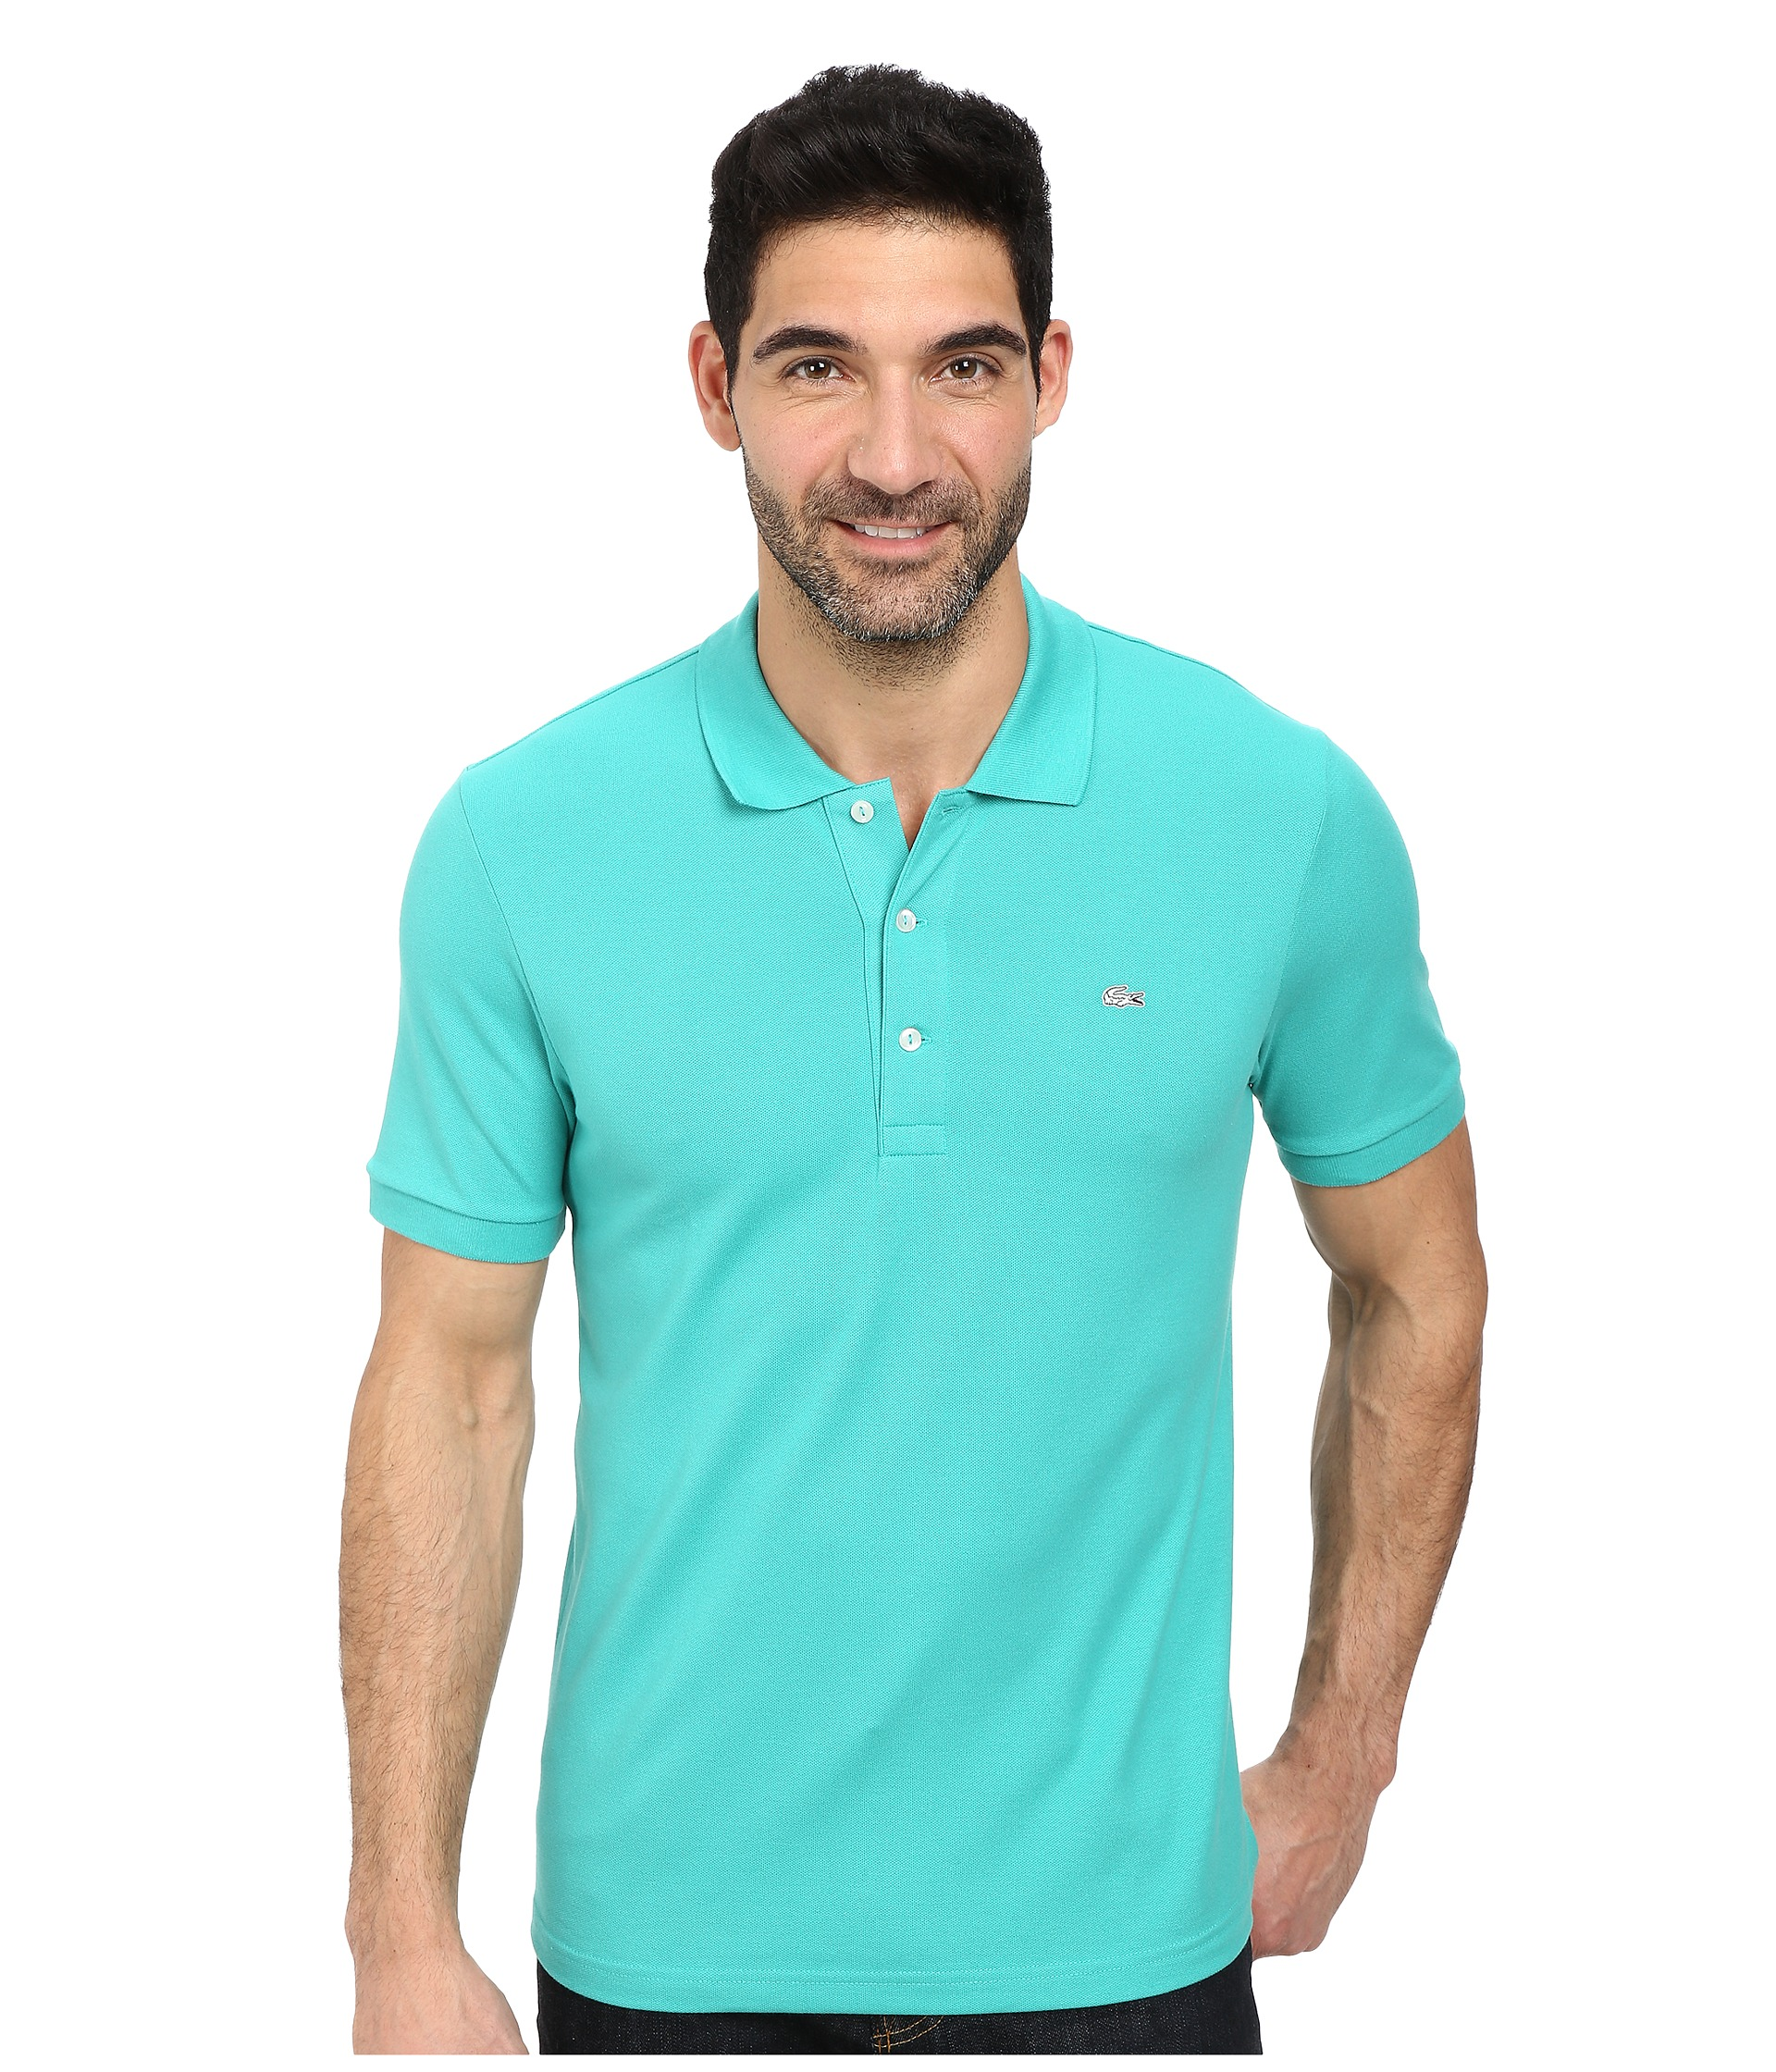 Lacoste premium short sleeve slim fit stretch pique polo for Short sleeve lacoste shirt